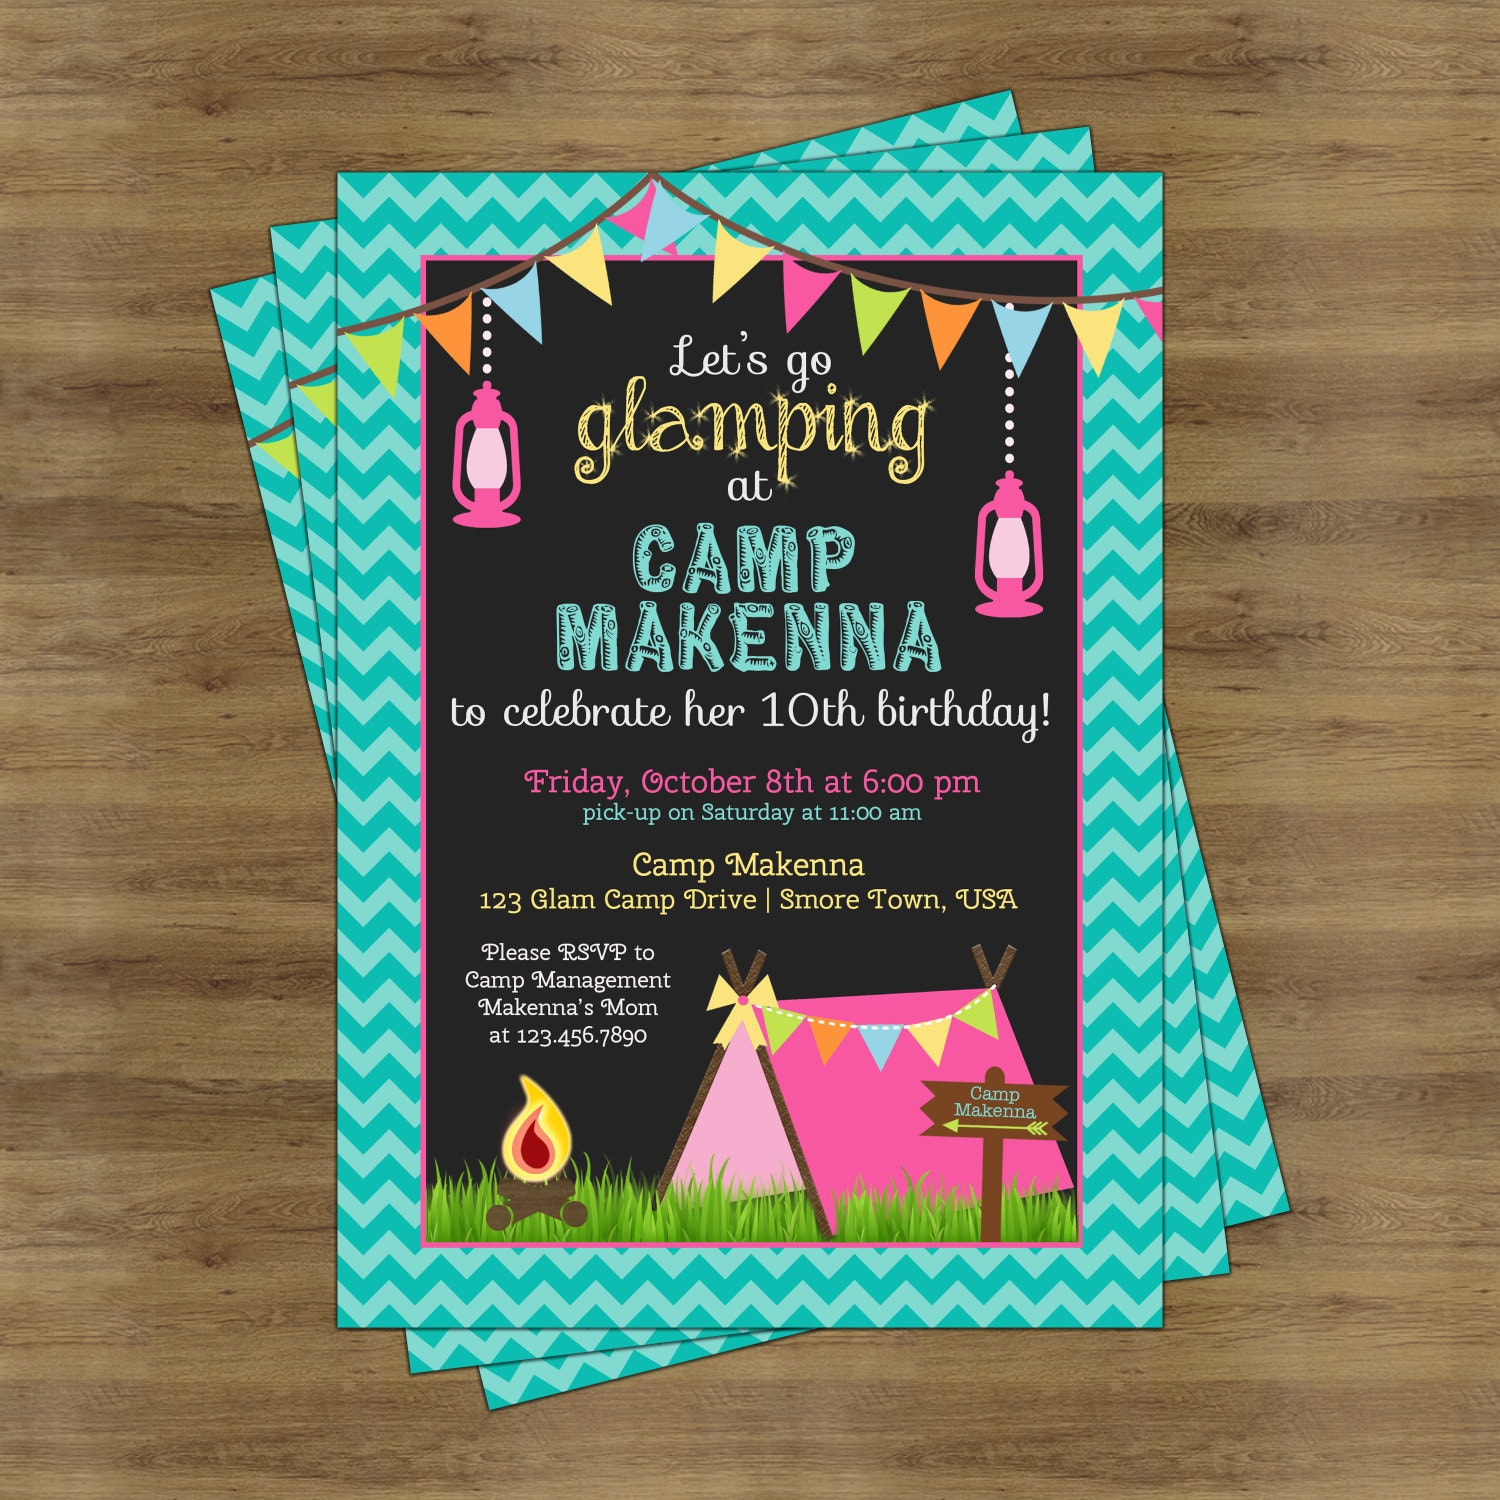 Camping Theme Invitations: Glamping Party Invitation Camping Birthday Invitation For